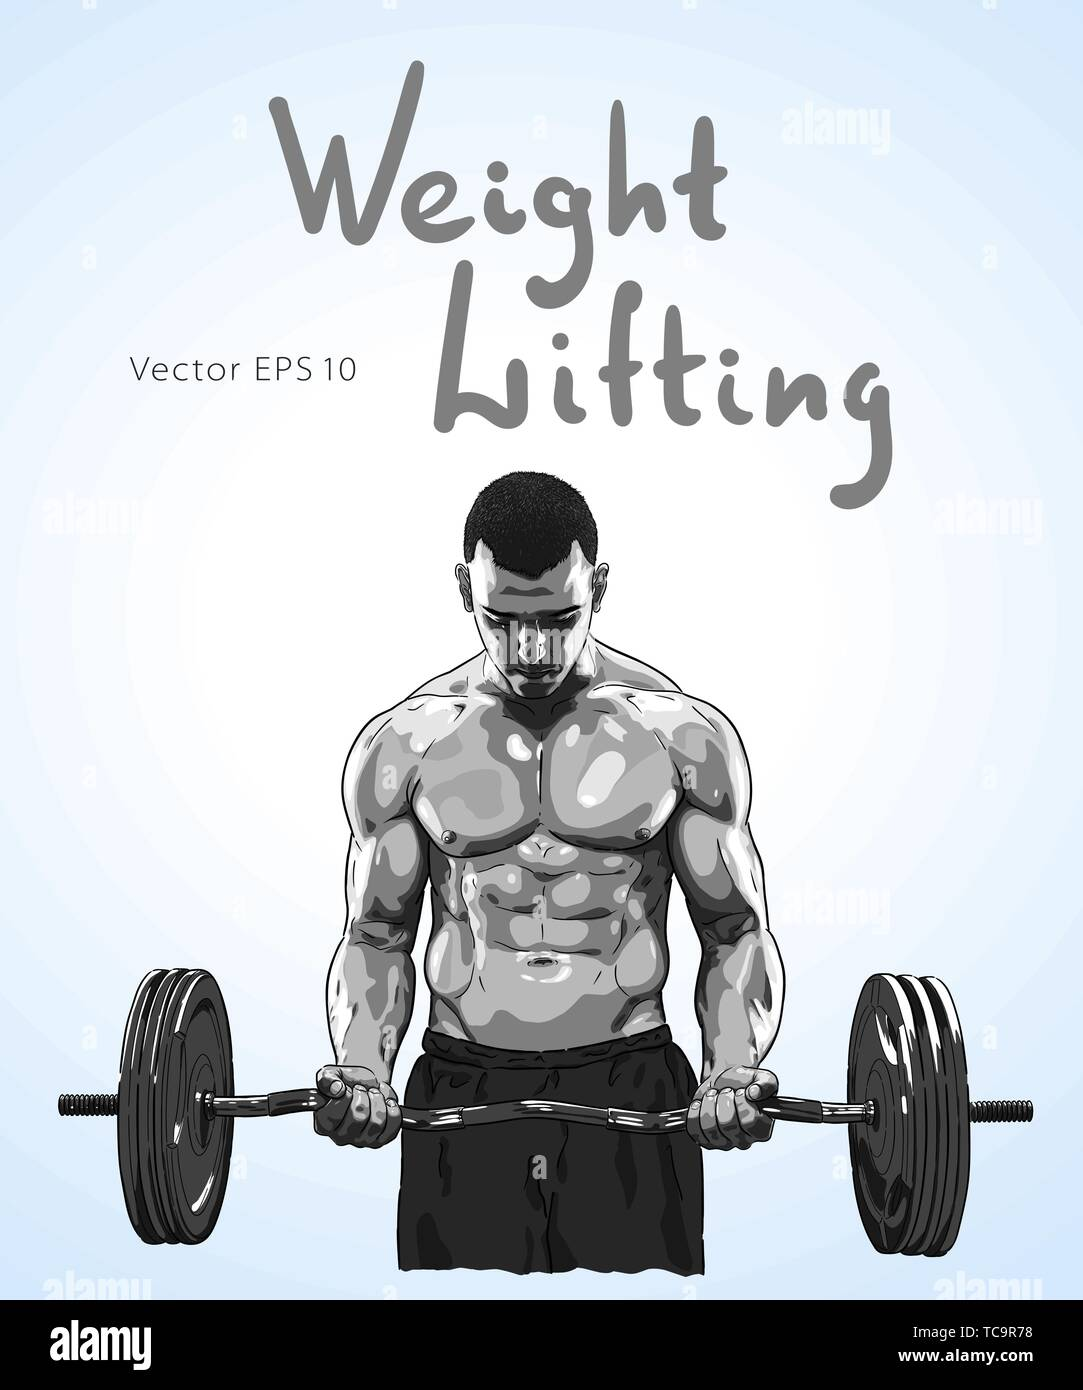 Weight Lifter man with relief muscles lifting heavy weight. - Stock Vector